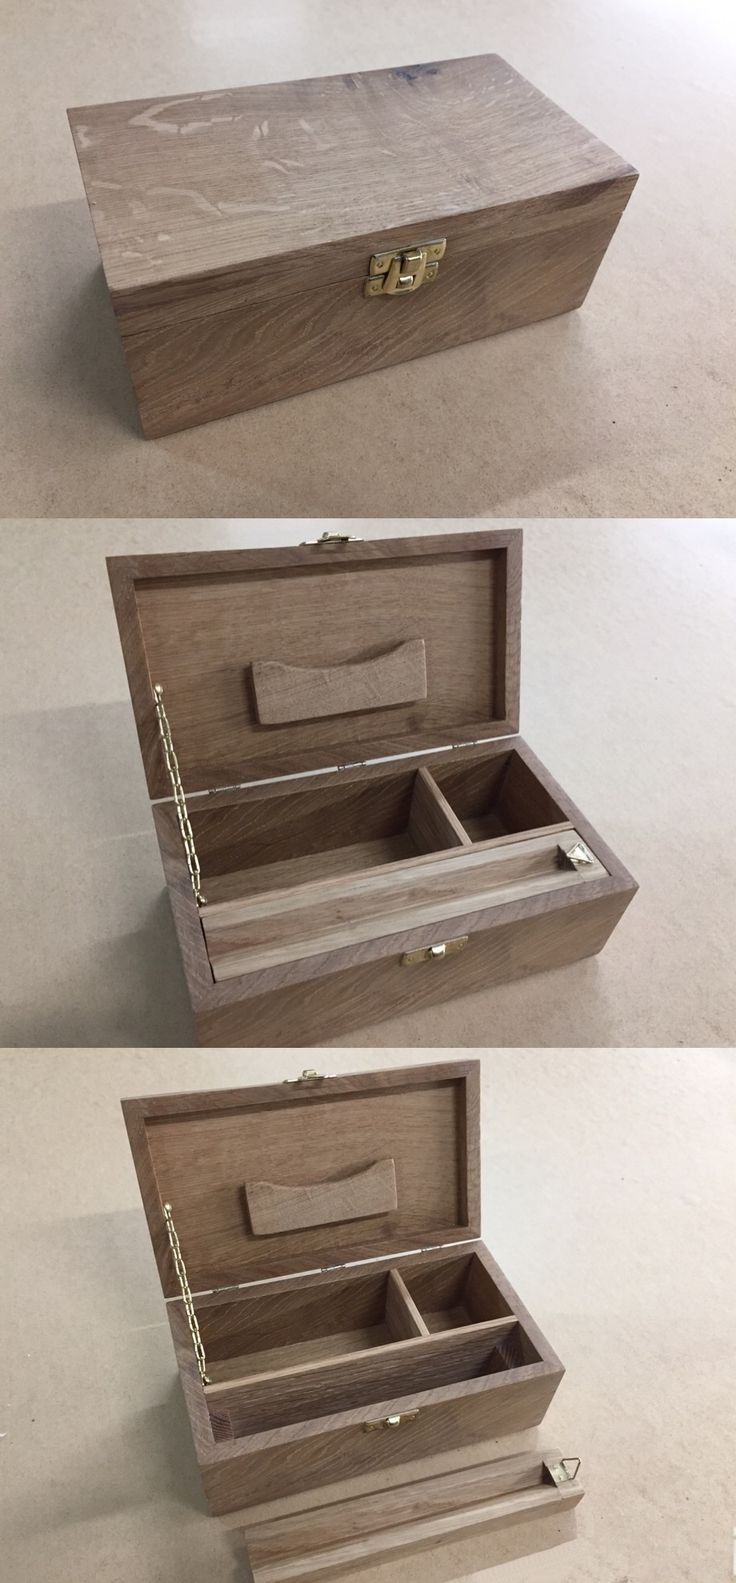 What about a weed box / rolling box?